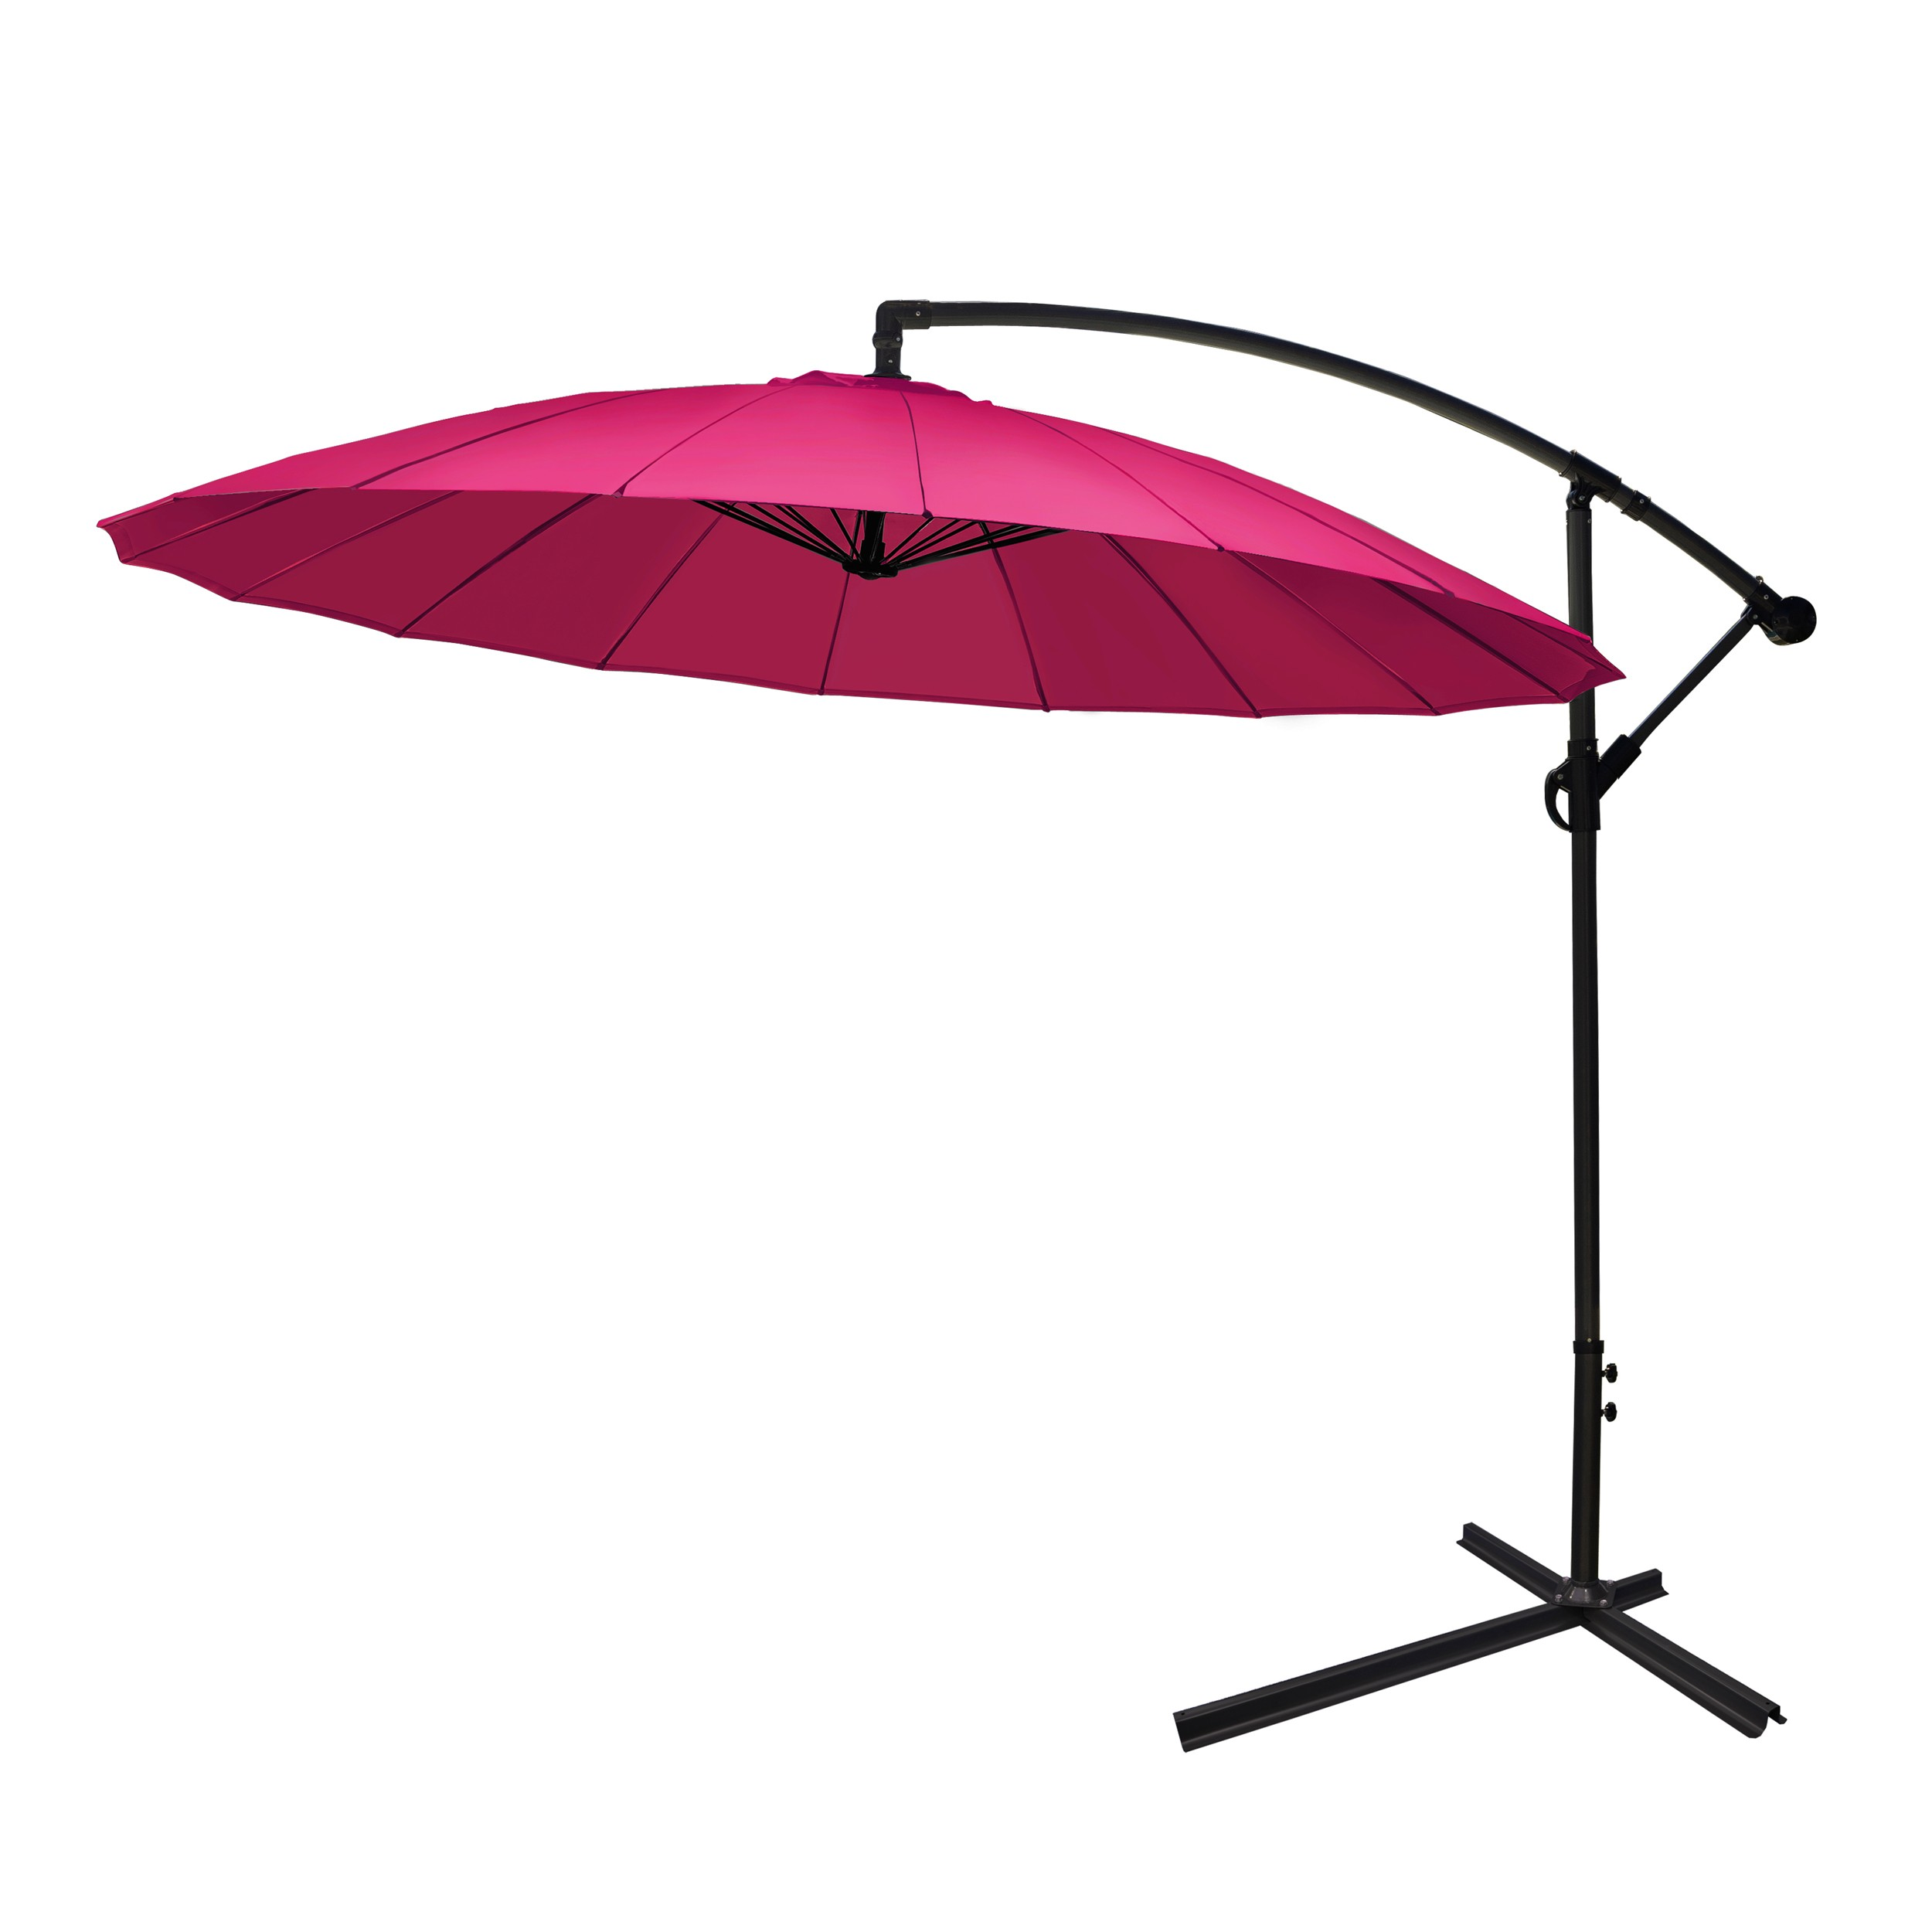 Parasole deporte simple parasol dport inclinable en - Parasol deporte inclinable leroy merlin ...